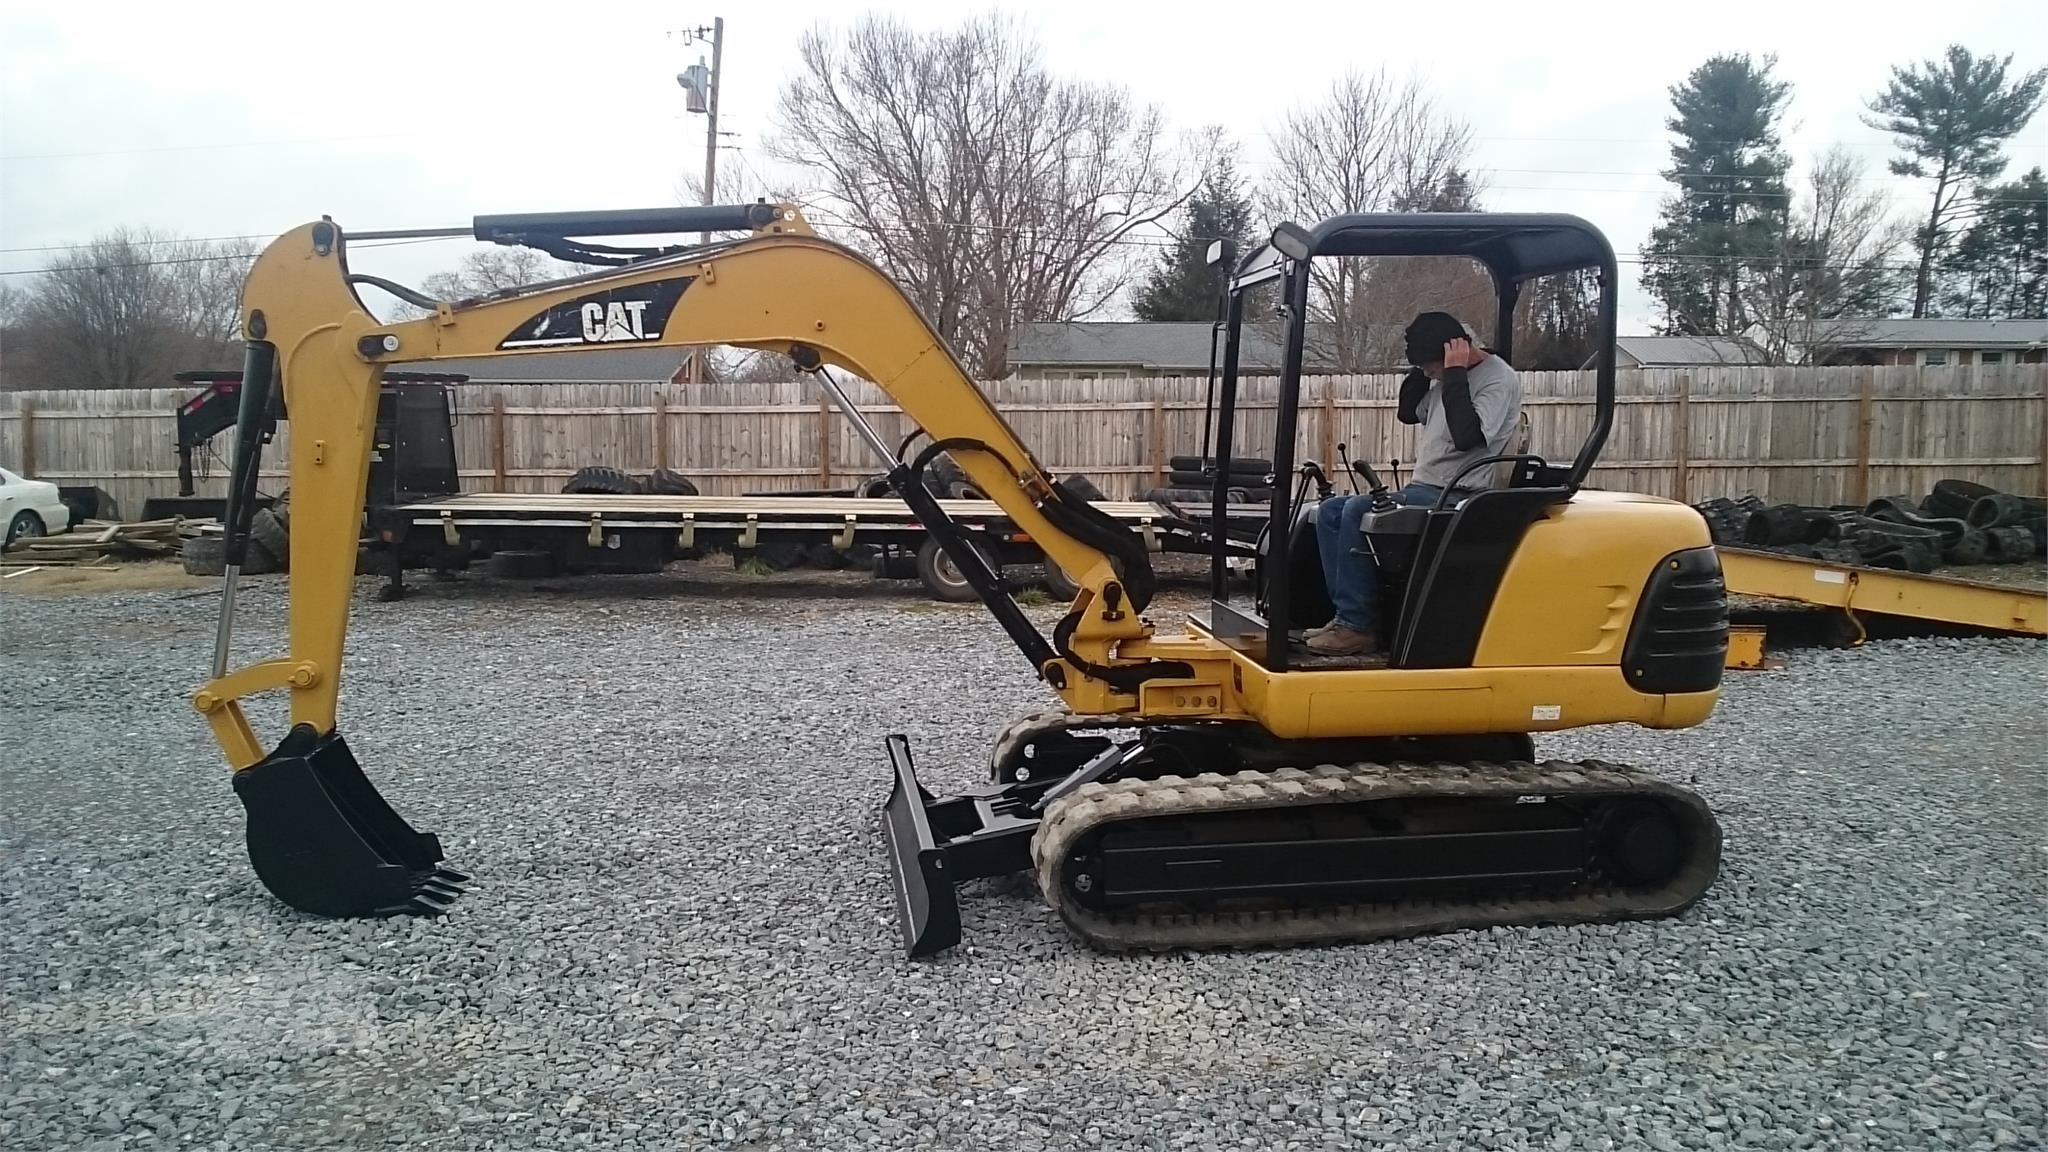 Used Heavy Equipment & Construction Equipment for Sale | Blountville